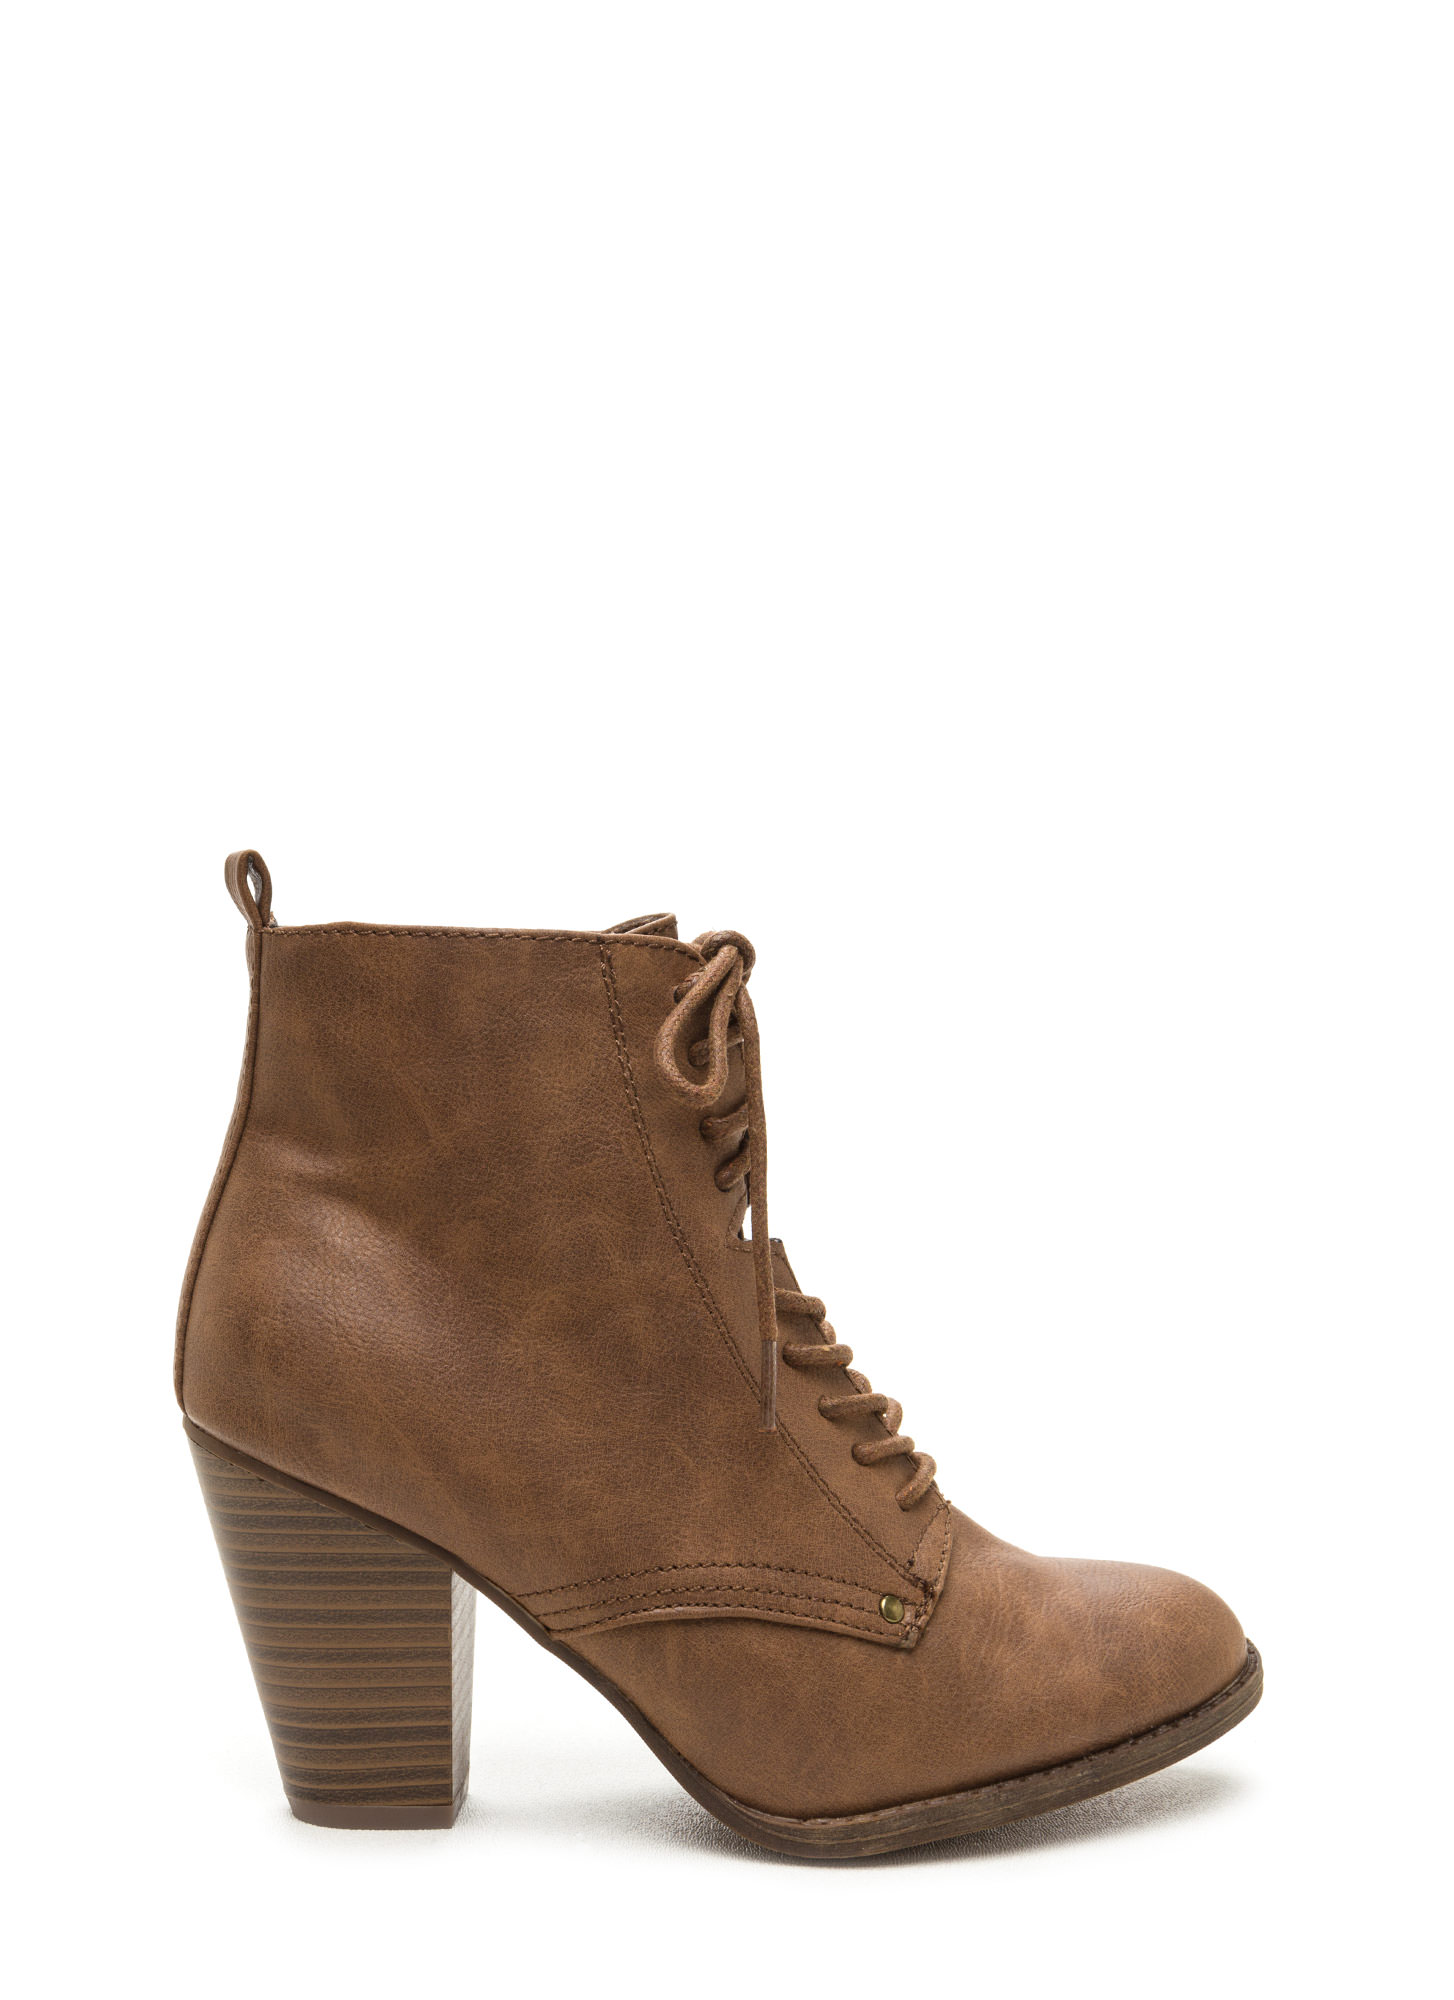 Complete Me Faux Leather Booties TAN